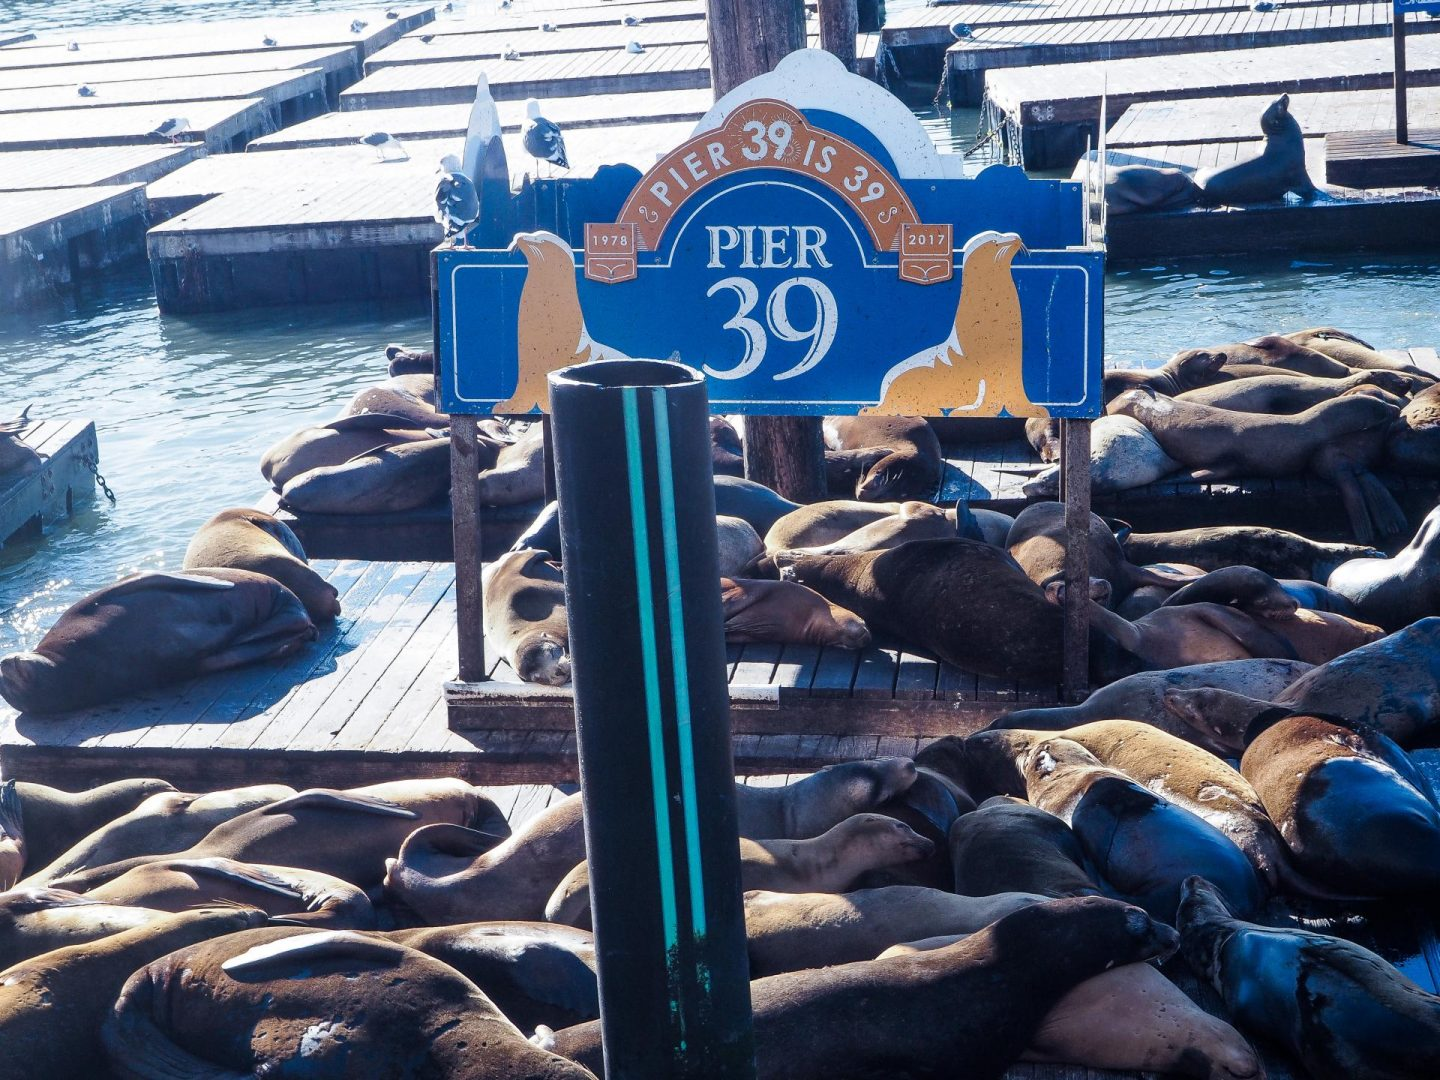 Pier 39, San Francisco - Rachel Nicole UK Travel Blogger